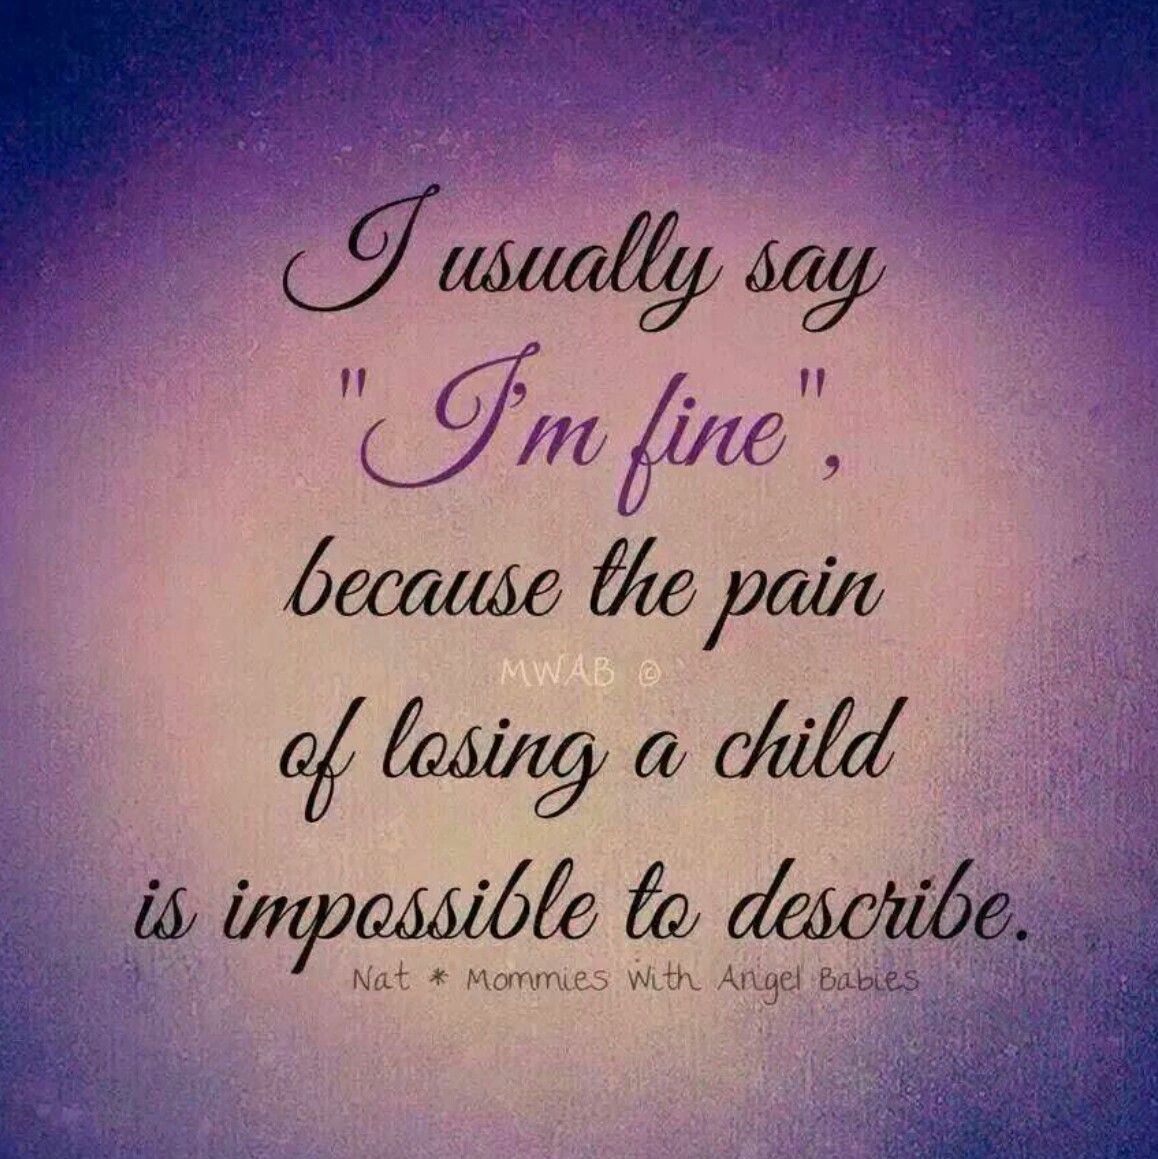 Quotes About Losing A Child A Child Of Any Ageforever 27Missing My Son So Very Much Me